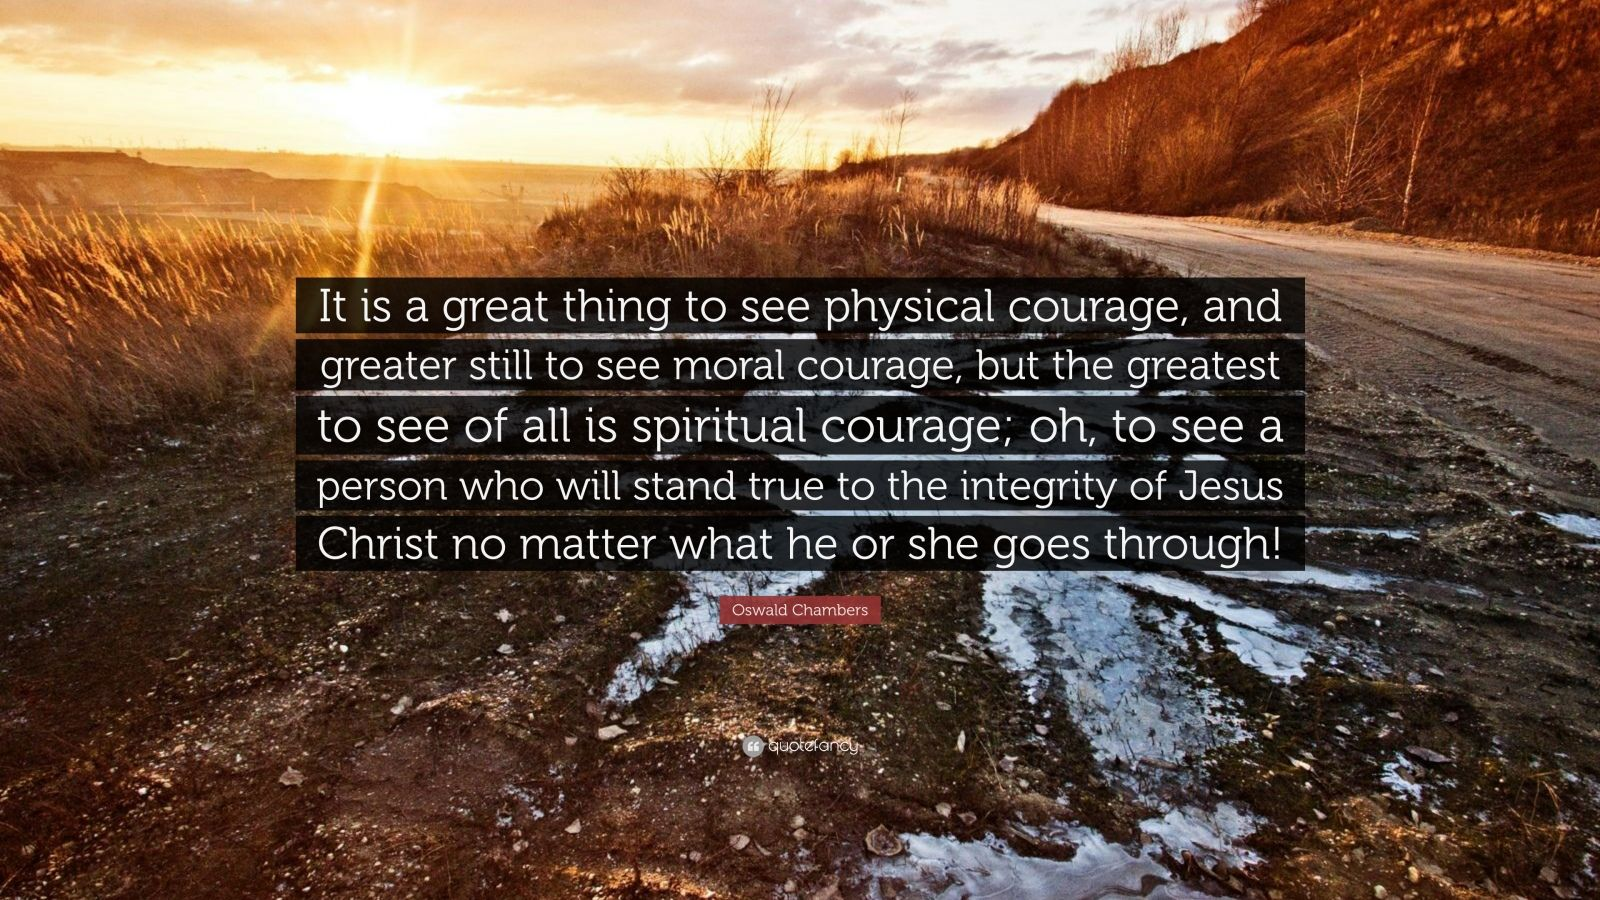 "Oswald Chambers Quote: ""It is a great thing to see physical courage, and greater still to see moral courage, but the greatest to see of all is spiritual courage; oh, to see a person who will stand true to the integrity of Jesus Christ no matter what he or she goes through!"""